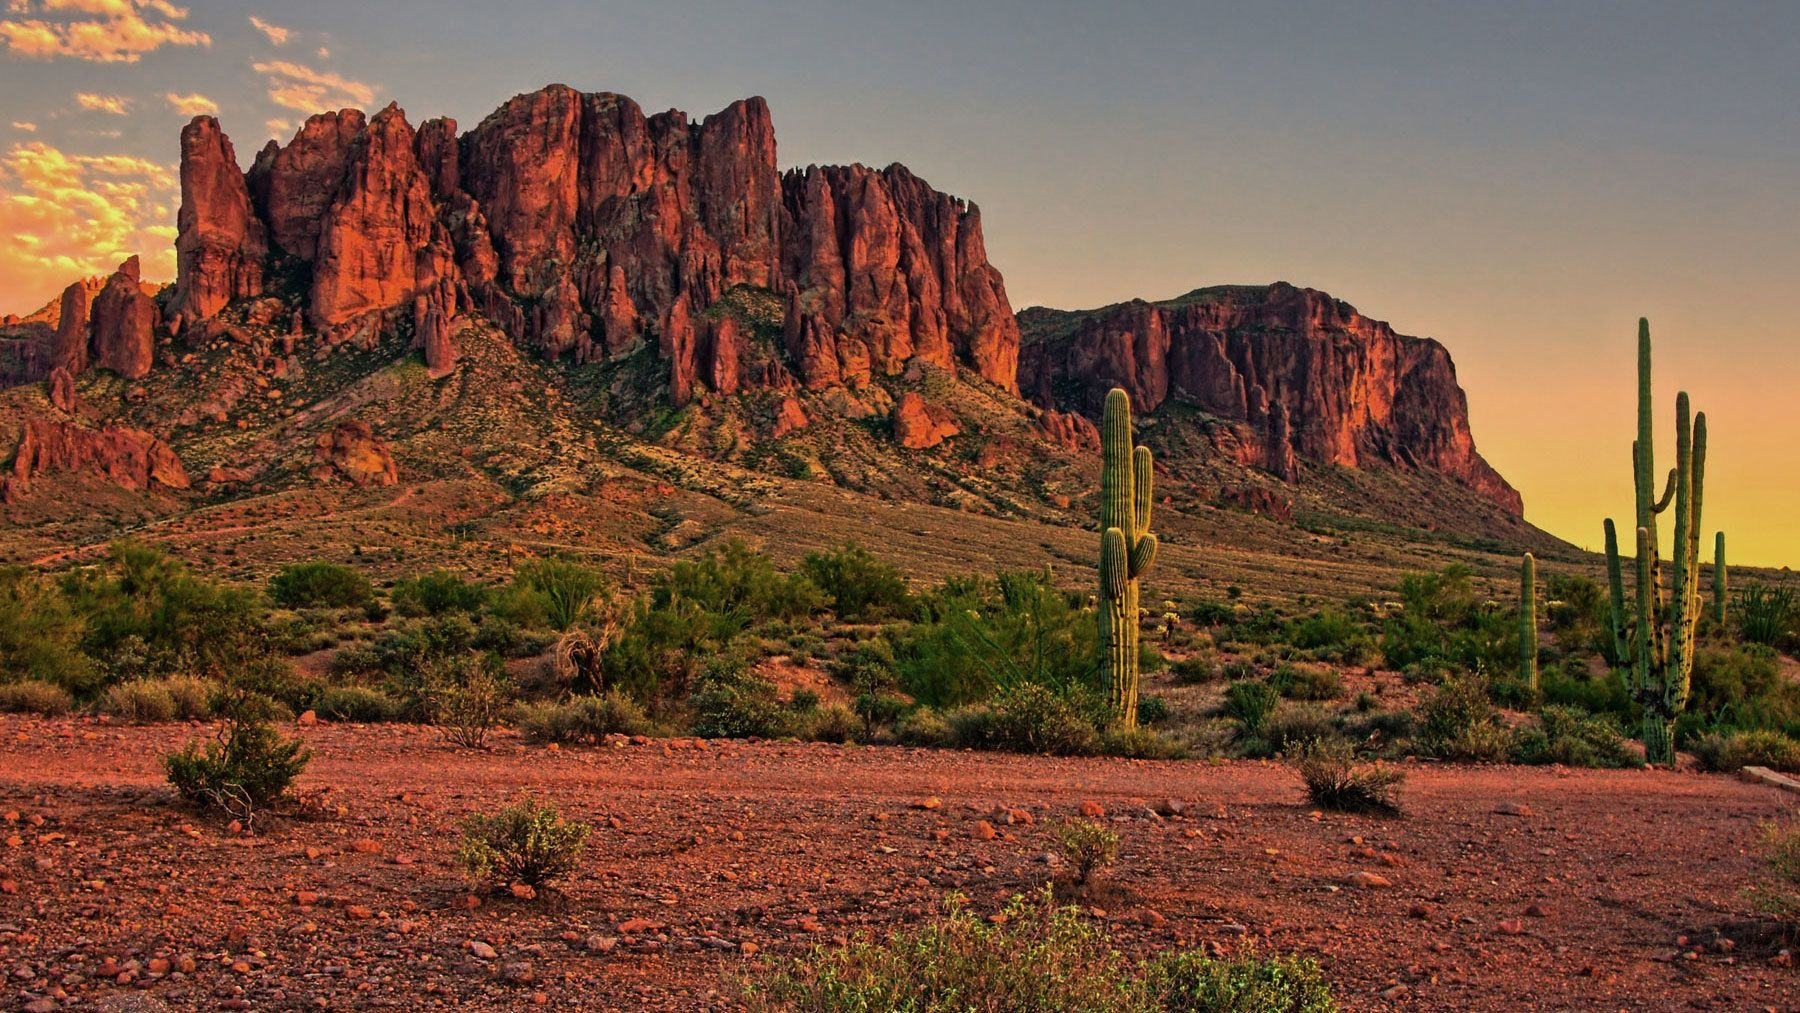 Red rock formations and cactus at sunset in Phoenix